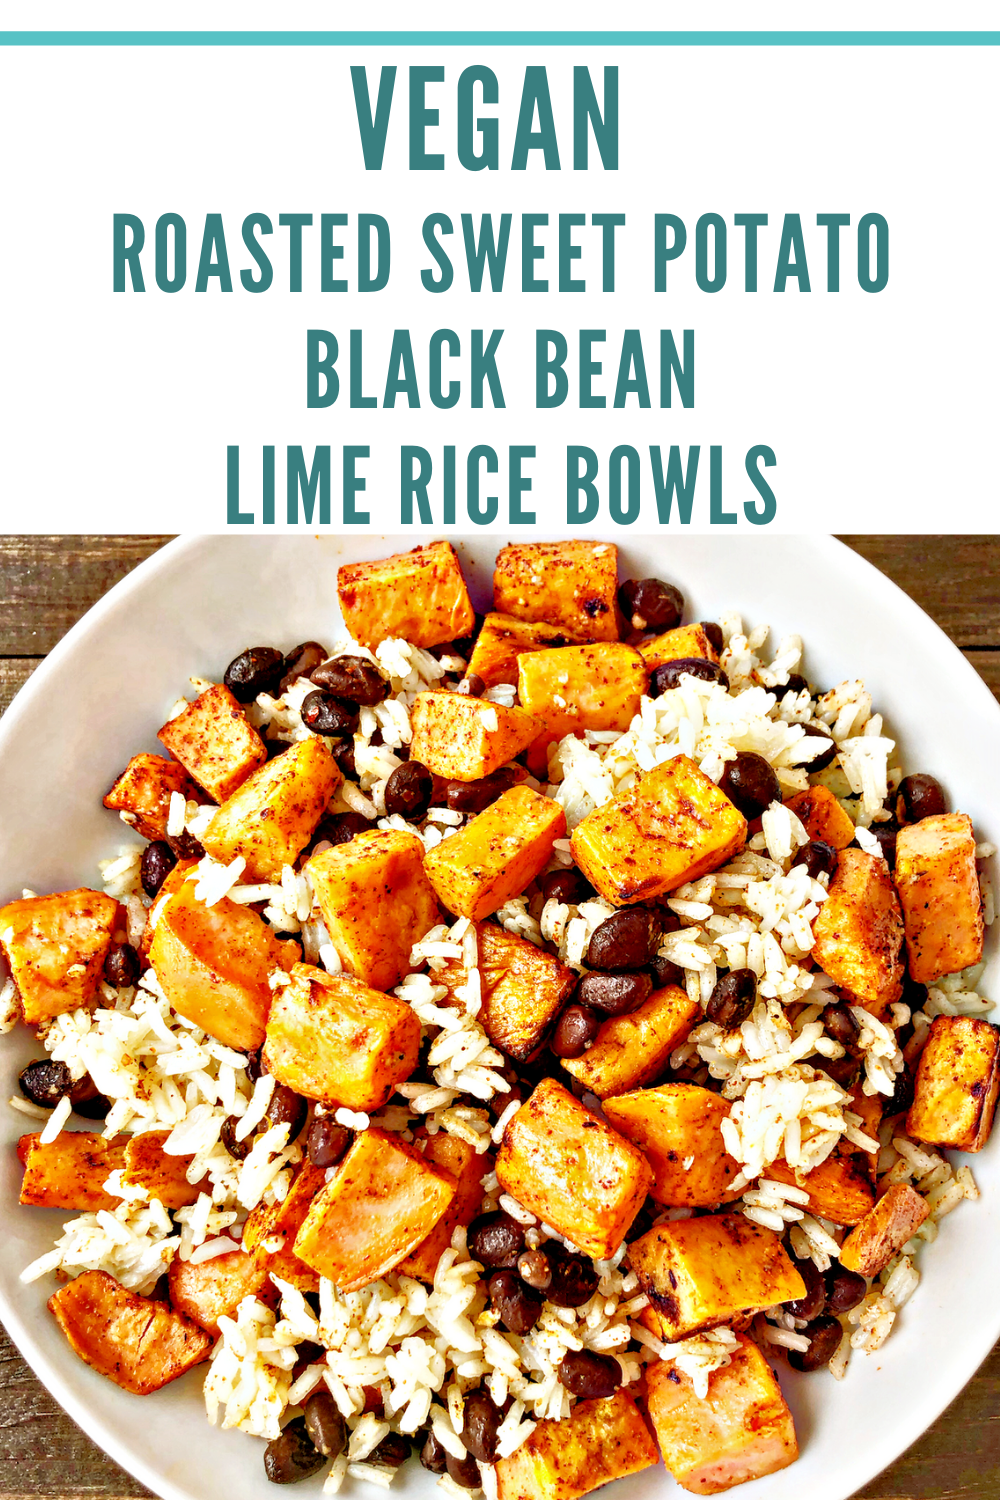 Roasted Sweet Potato, Black Bean and Lime Rice Bowls | A colorful, tasty, satisfying, protein-packed, budget-friendly meal, you can have on the table in about 30-40 minutes! | thiswifecooks.com | #healthyveganrecipes #ricebowlrecipes #roastedsweetpotato via @thiswifecooks